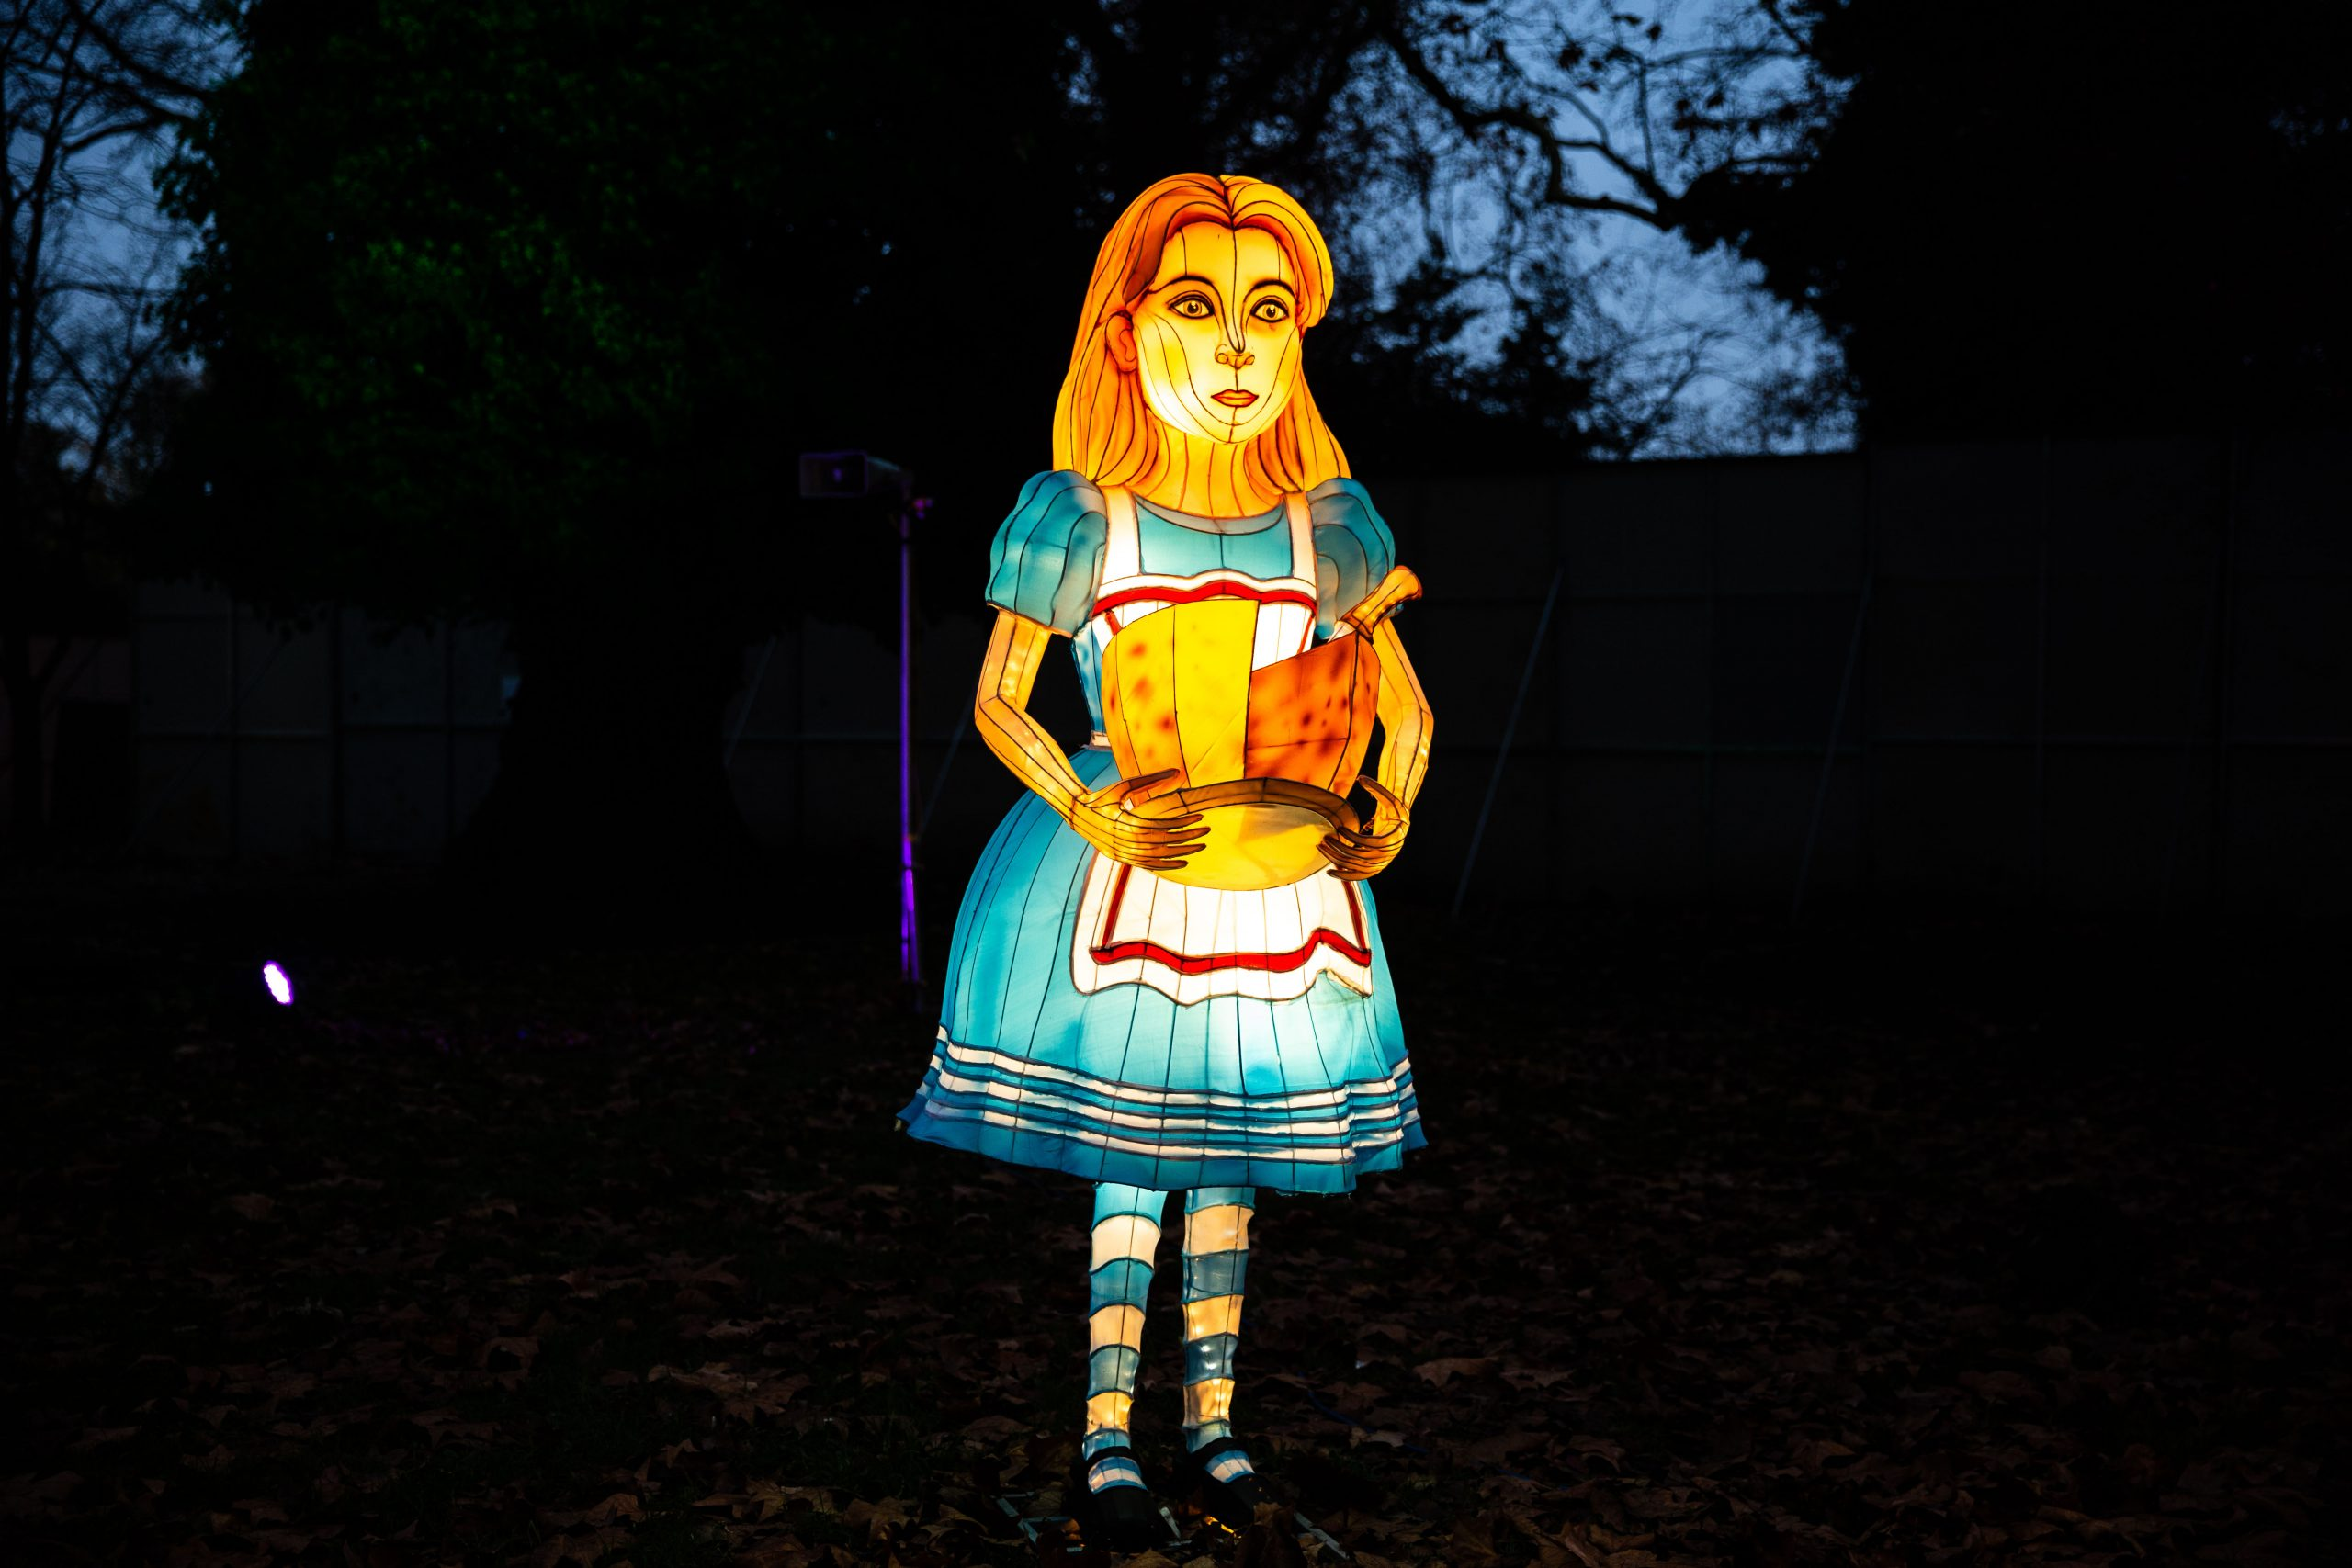 Alice in Wonderland Giant Lantern as part of trail at Lightwater Valley